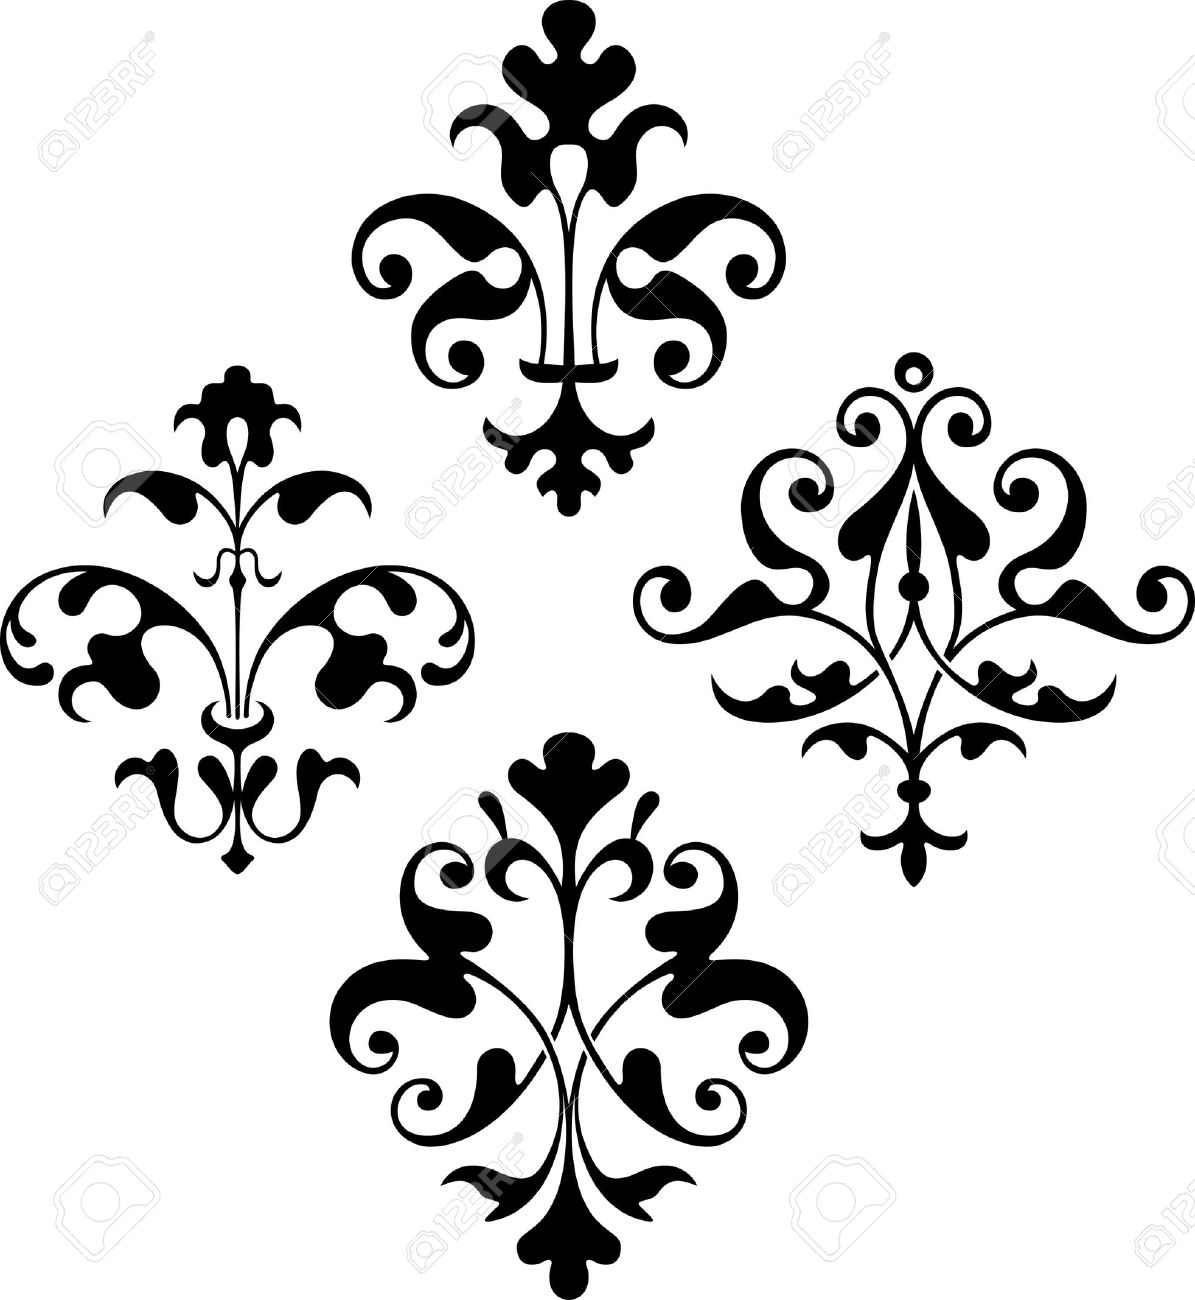 design elements on white royalty free cliparts vectors and stock